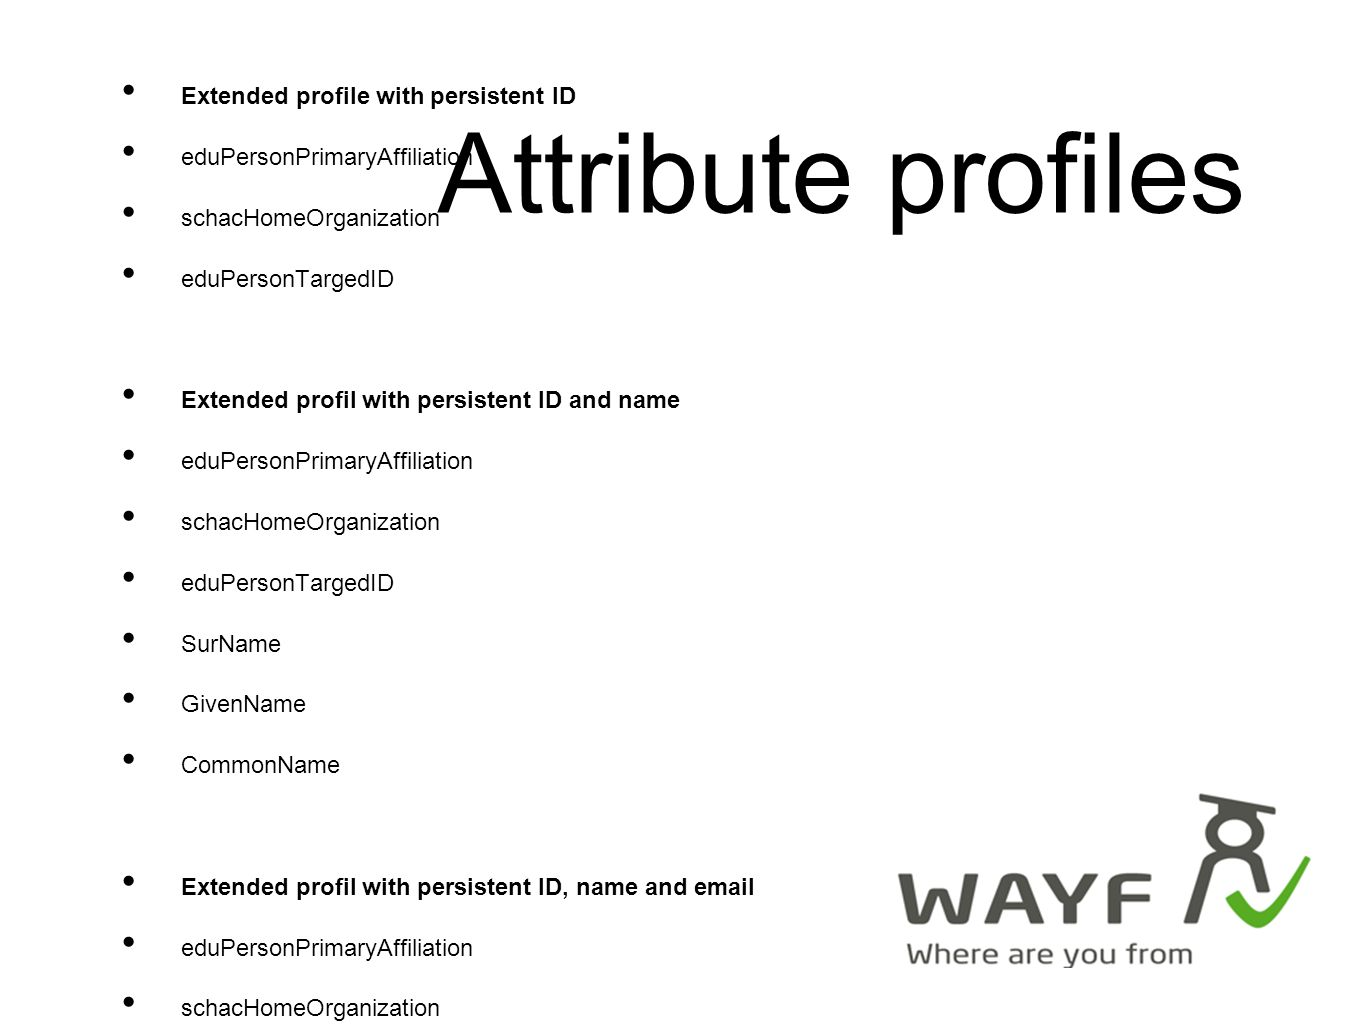 WAYF is live as of 28th of March 2008 All central services running WAYF, consent, consent-admin Central federating component (CFC): simpleSAMLphp Contract draft (turned down yesterday) websites open (Danish only so far) Production evironment + QA Press release to come (with ministers)